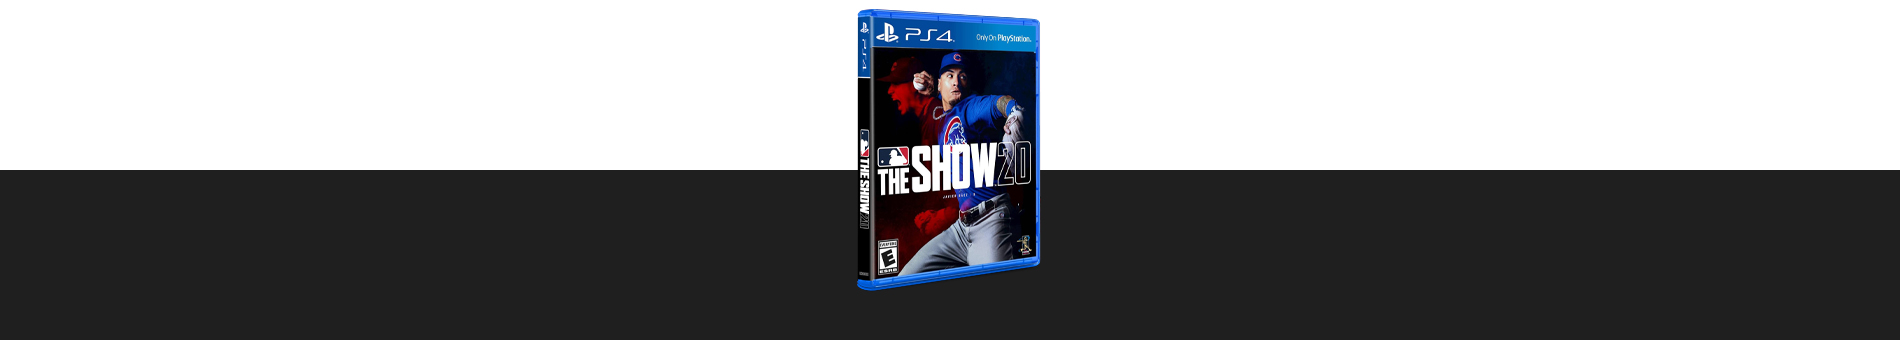 Sony Playstation Mlb Theshow 20 Landing Page  Tile 03